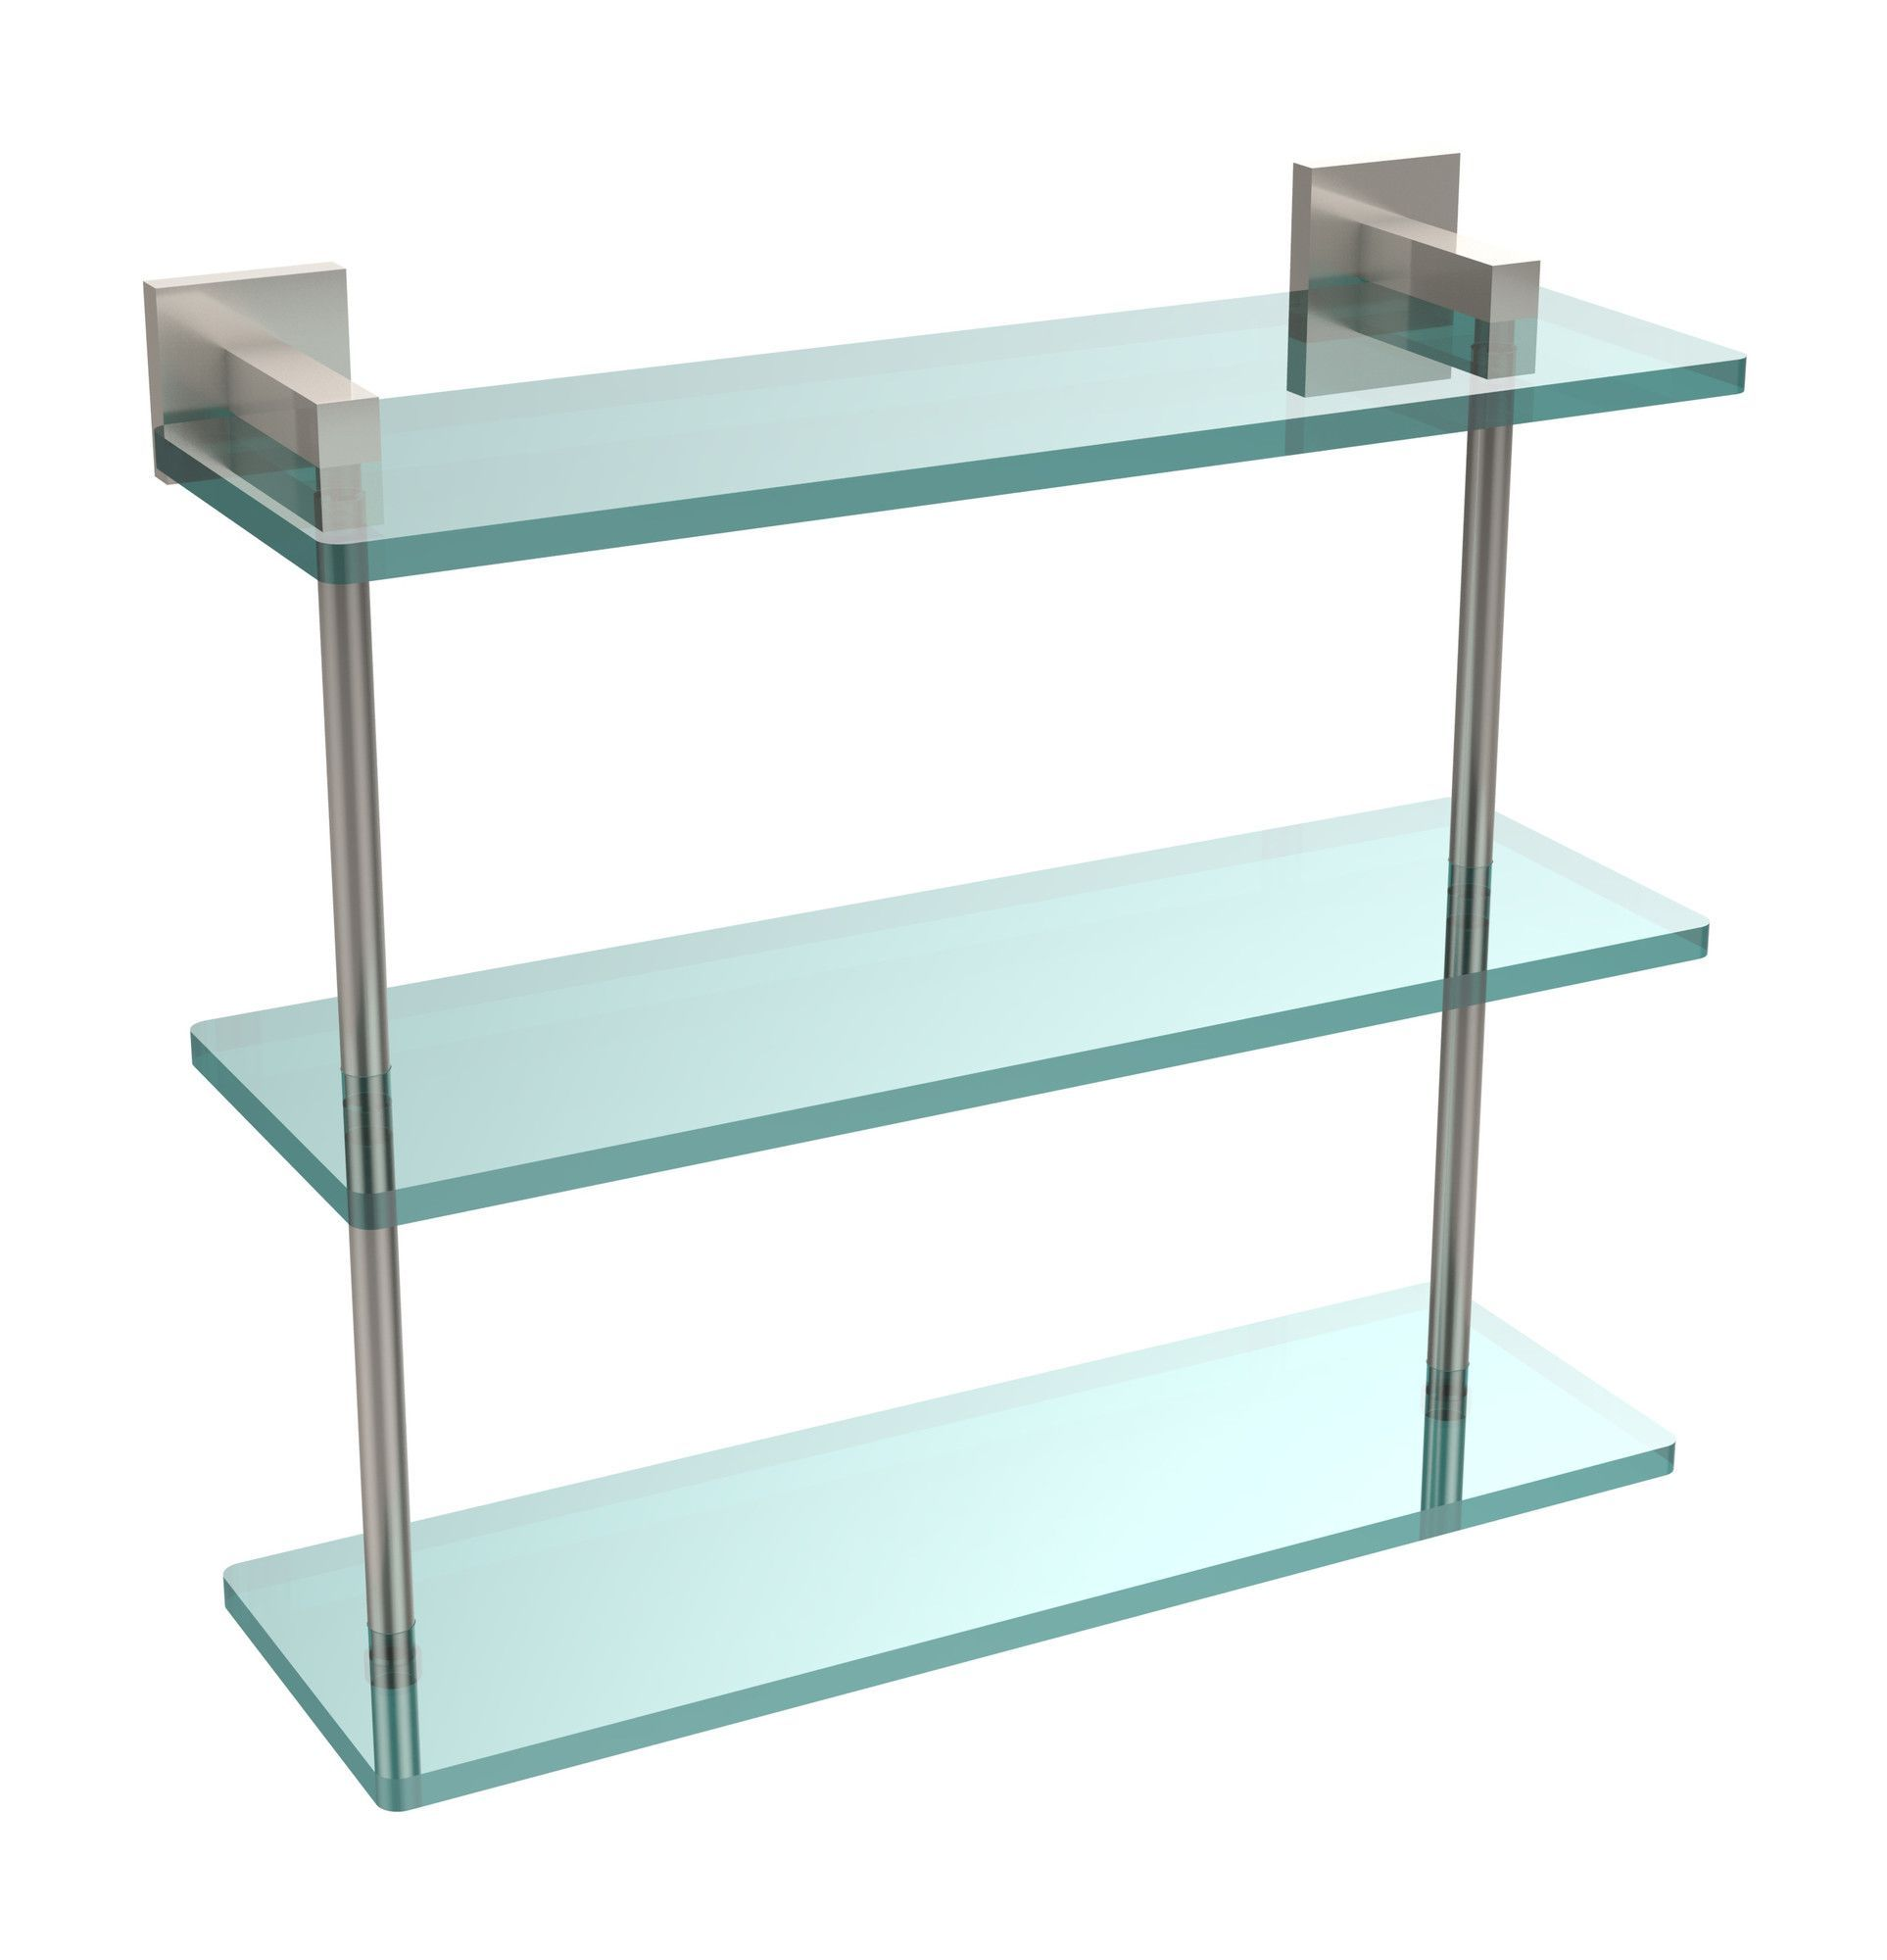 "Montero 16"" W x 14.9"" H Bathroom Shelf"